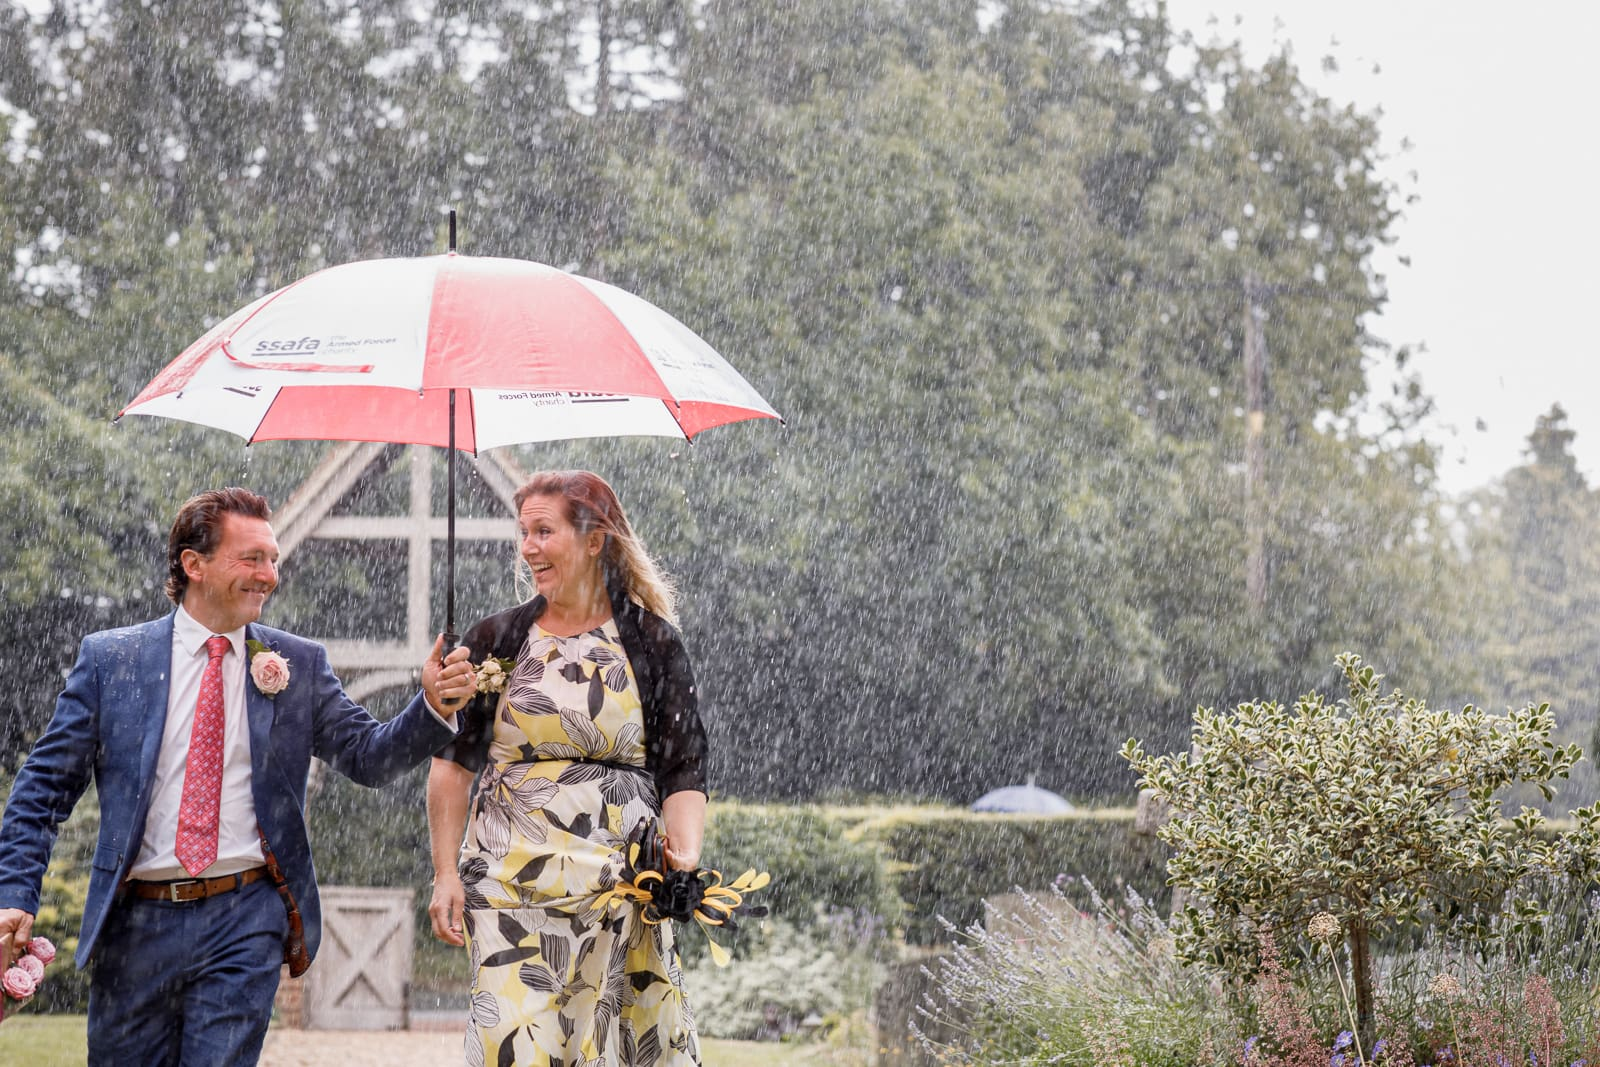 guests arriving to wedding in pouring rain with umbrella